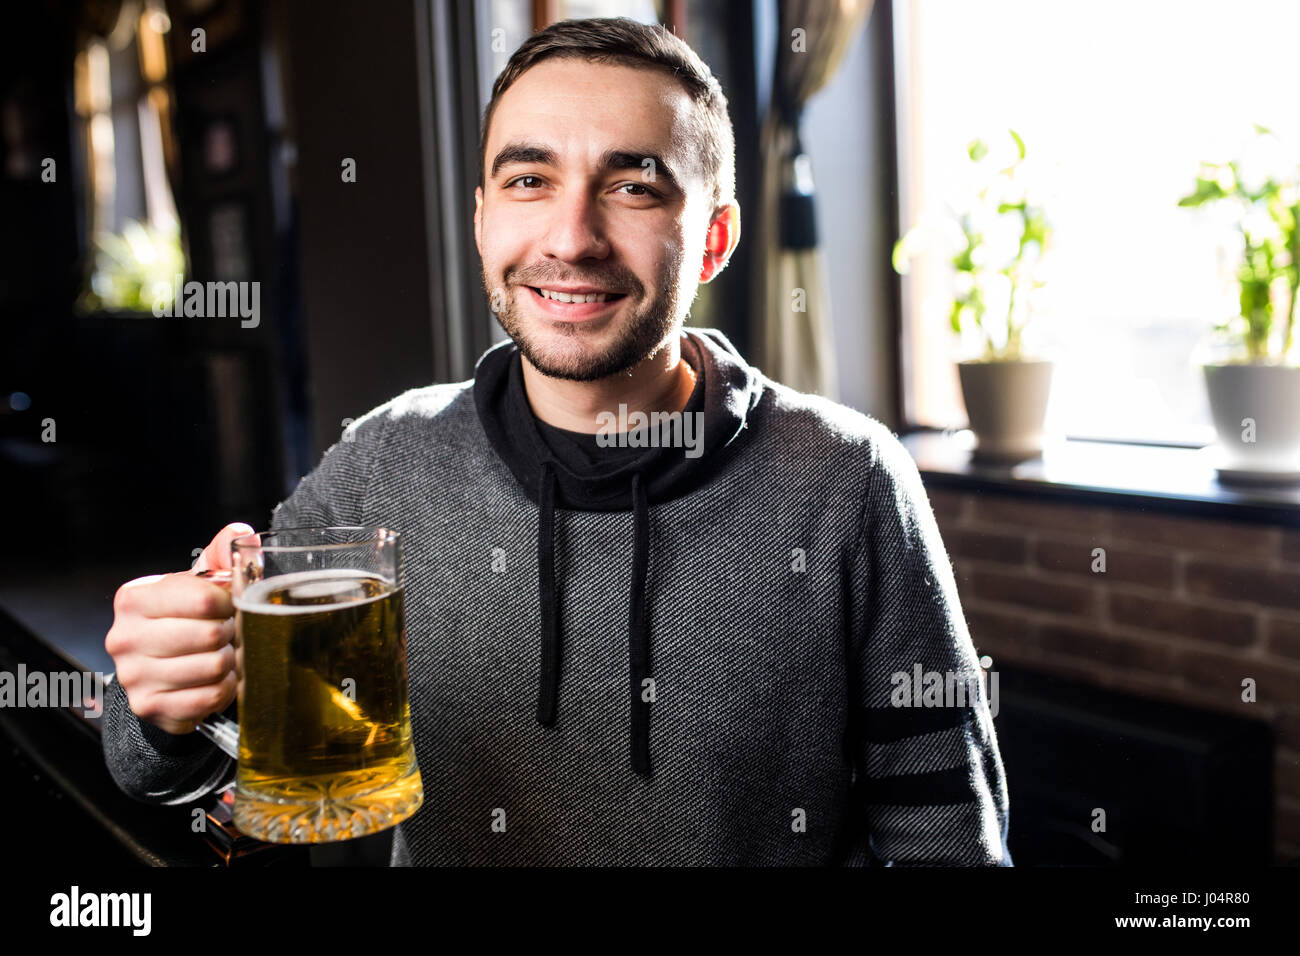 single man in a pub or bar holding the beer high in the air - Stock Image